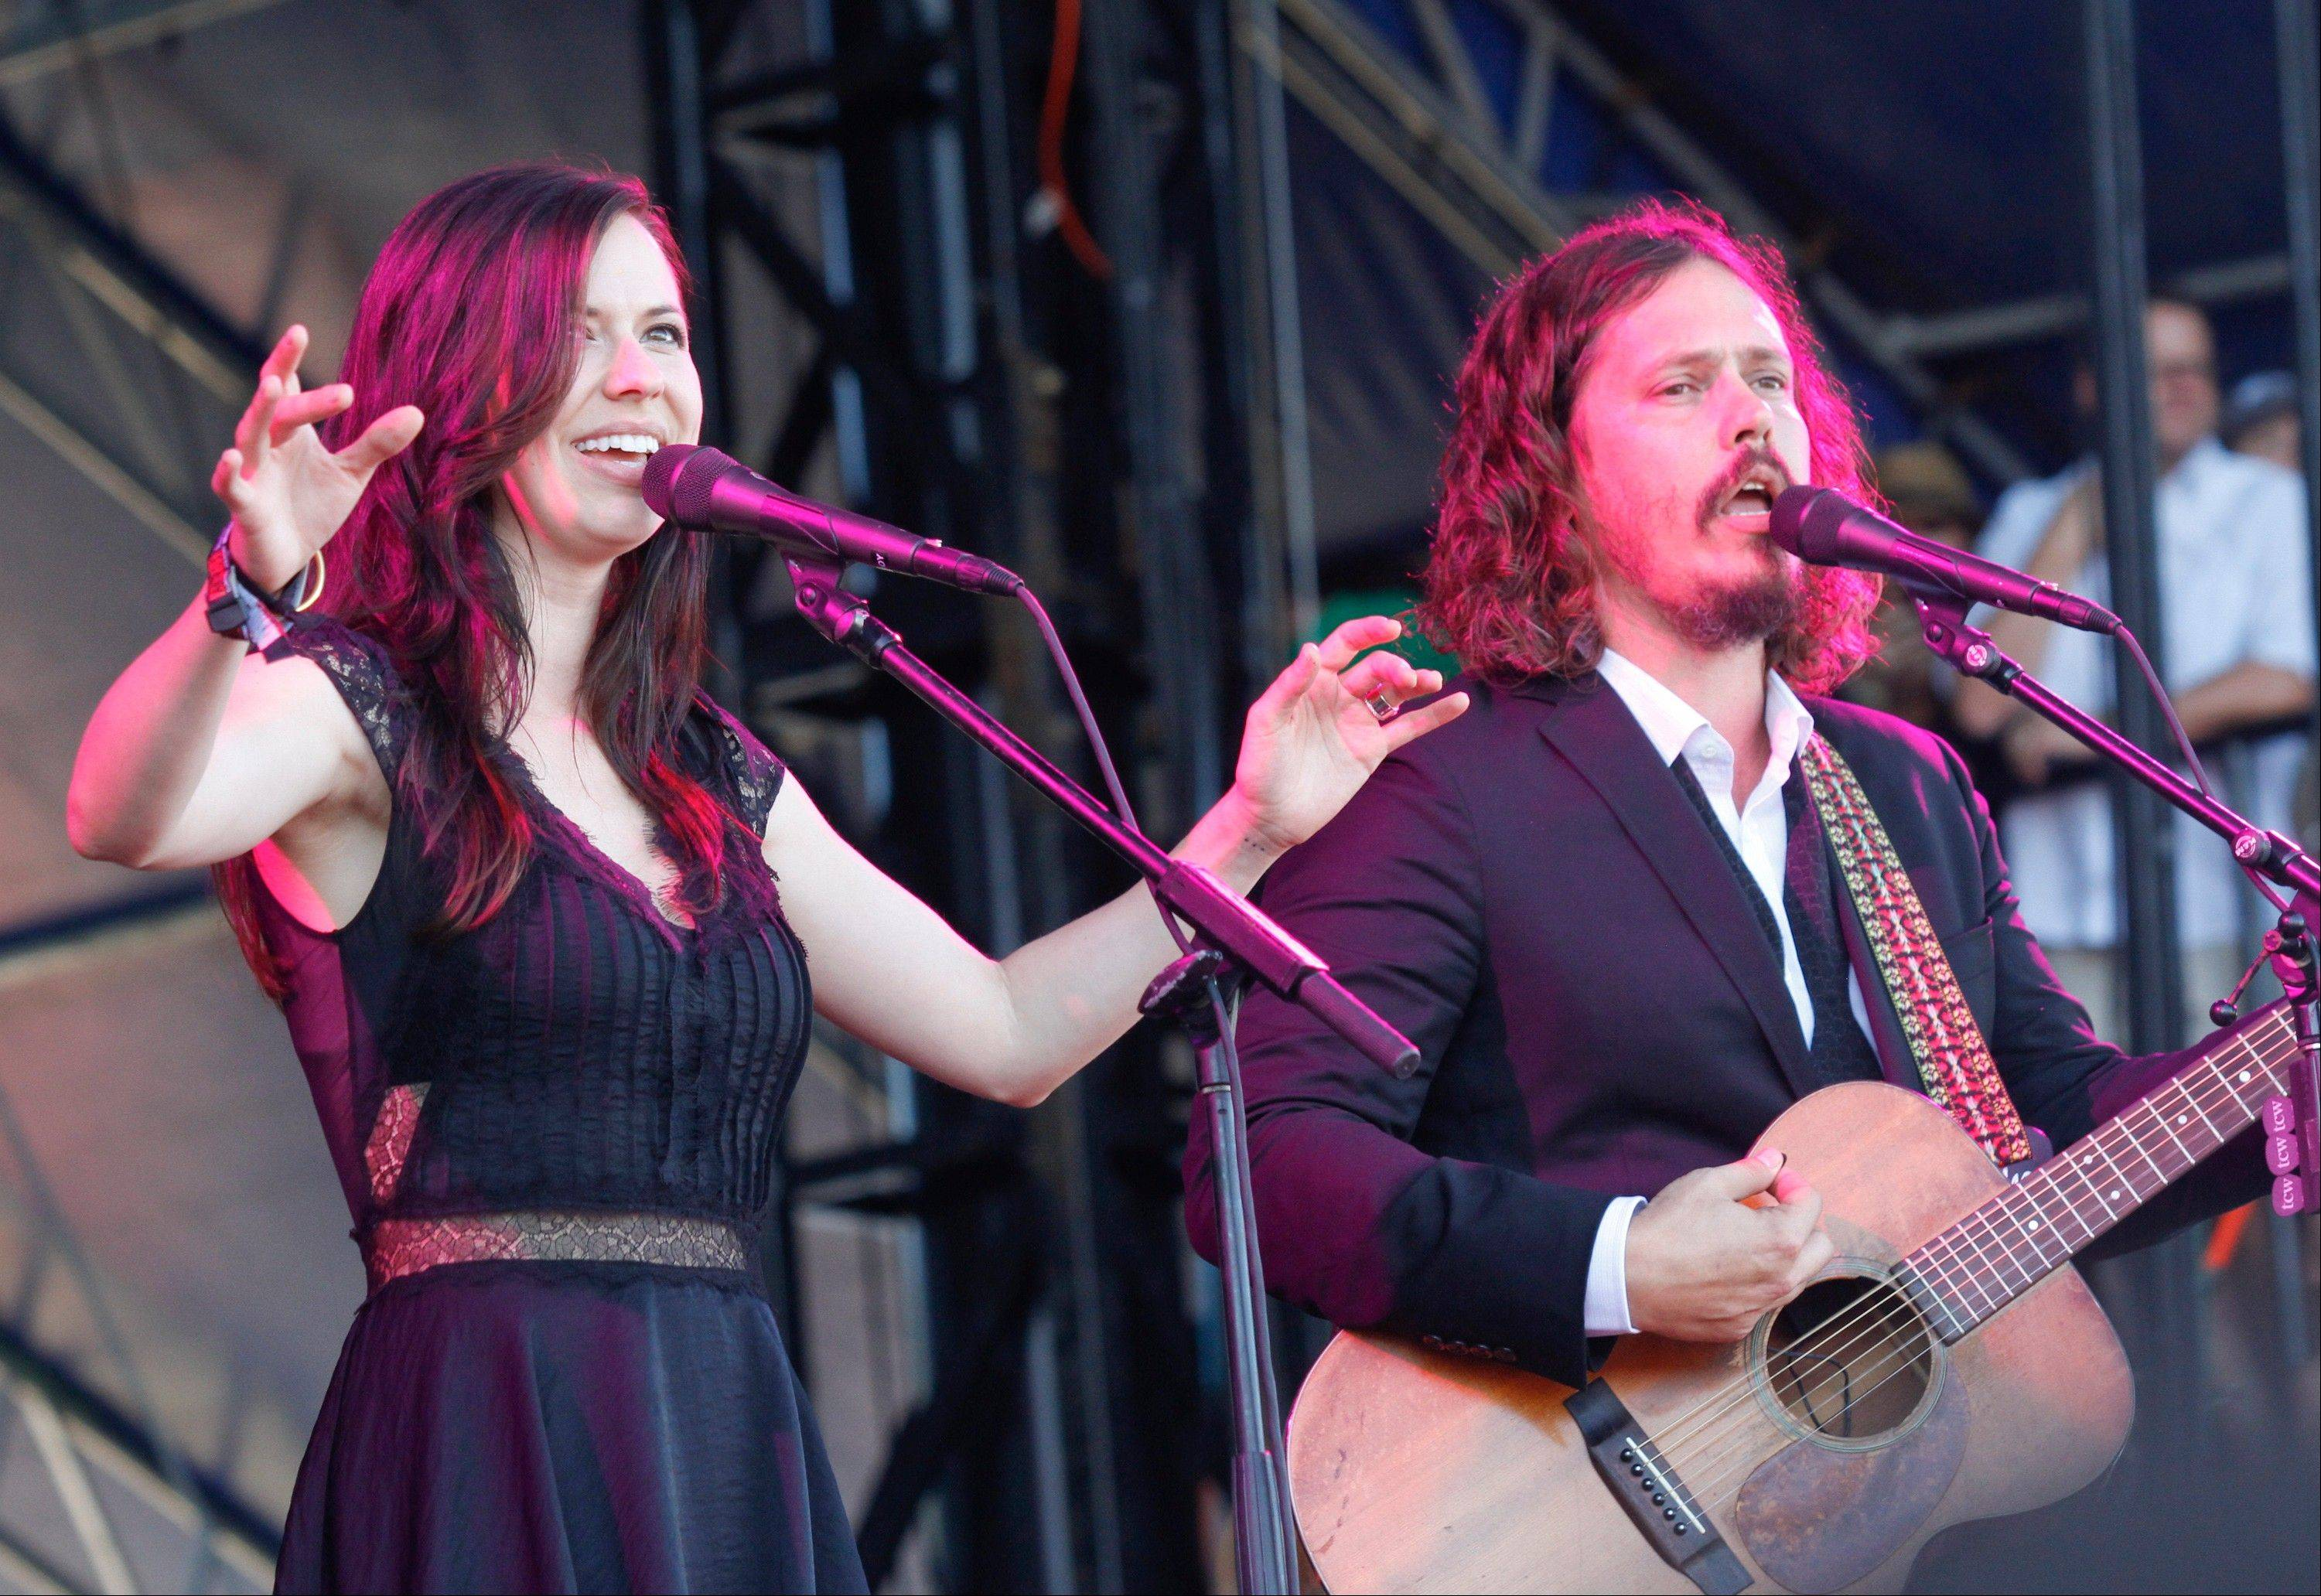 The future of John Paul White and Joy Williams of The Civil Wars continues to be uncertain. Williams said Thursday in a Twitter chat that she's been listening to new music, a sign that the Grammy-winning duo who ended their recent European tour due to 'irreconcilable differences' may release a new album in 2013.